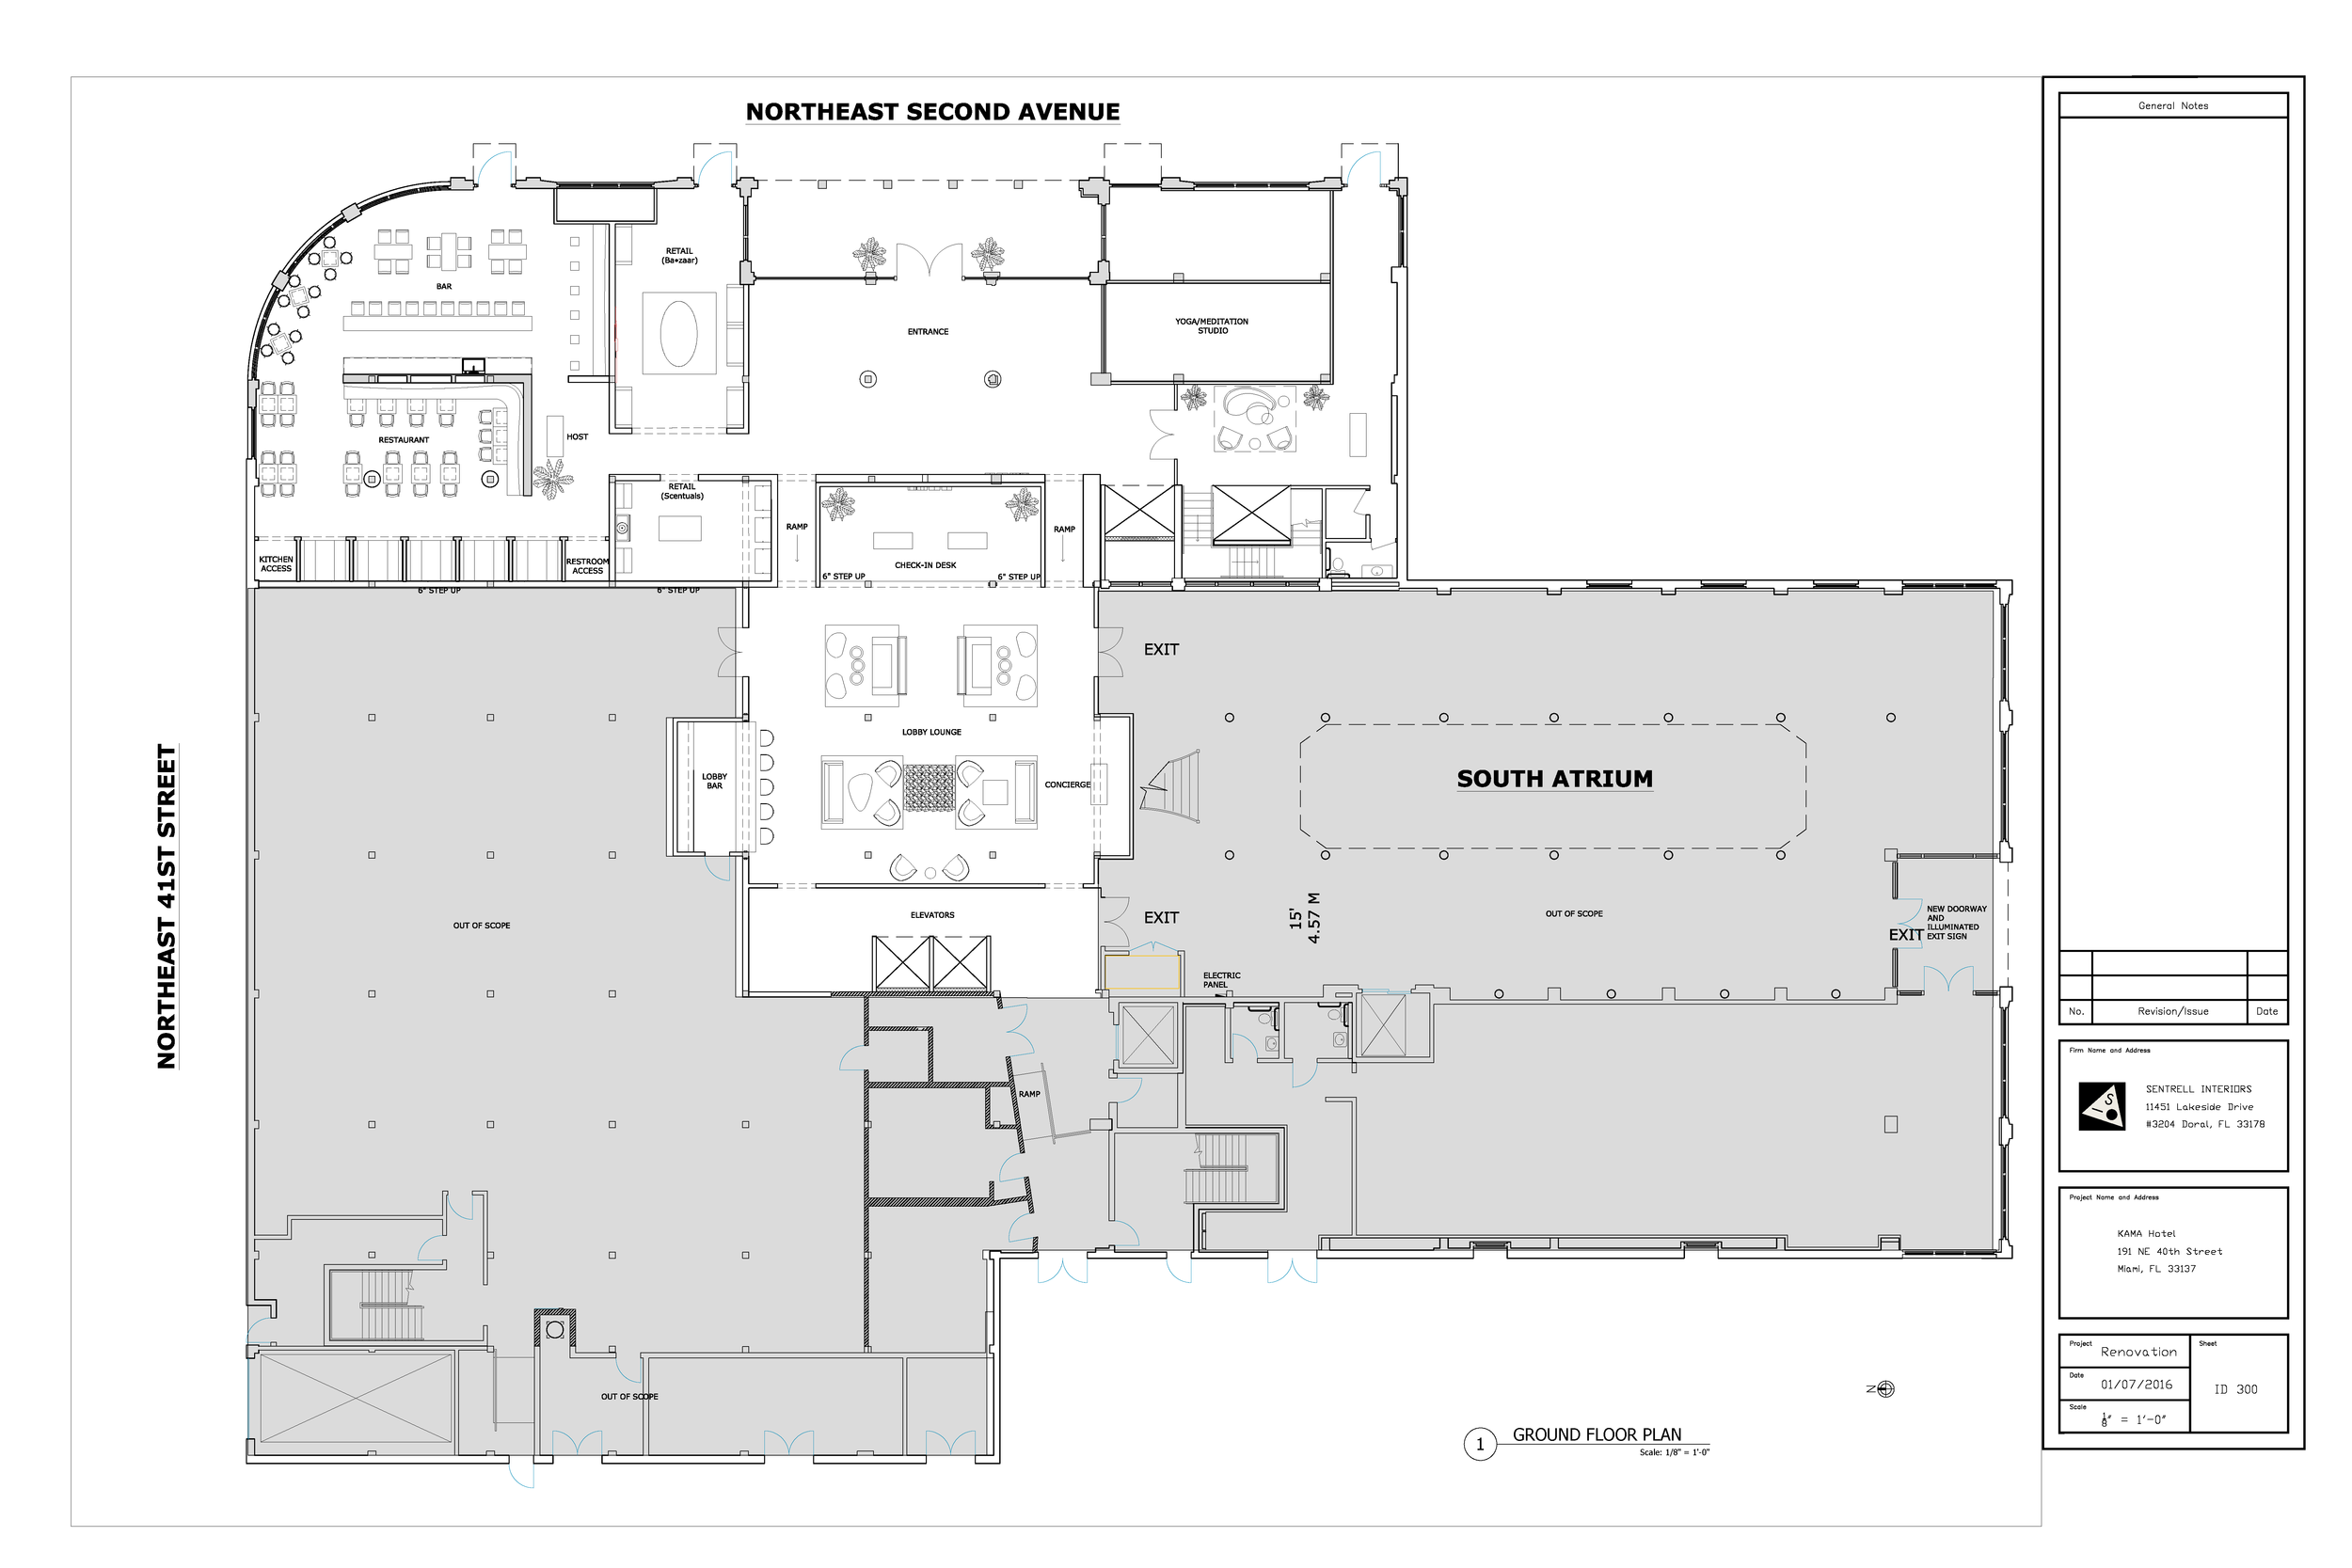 ID 300 Ground Floor Floor Plan.png